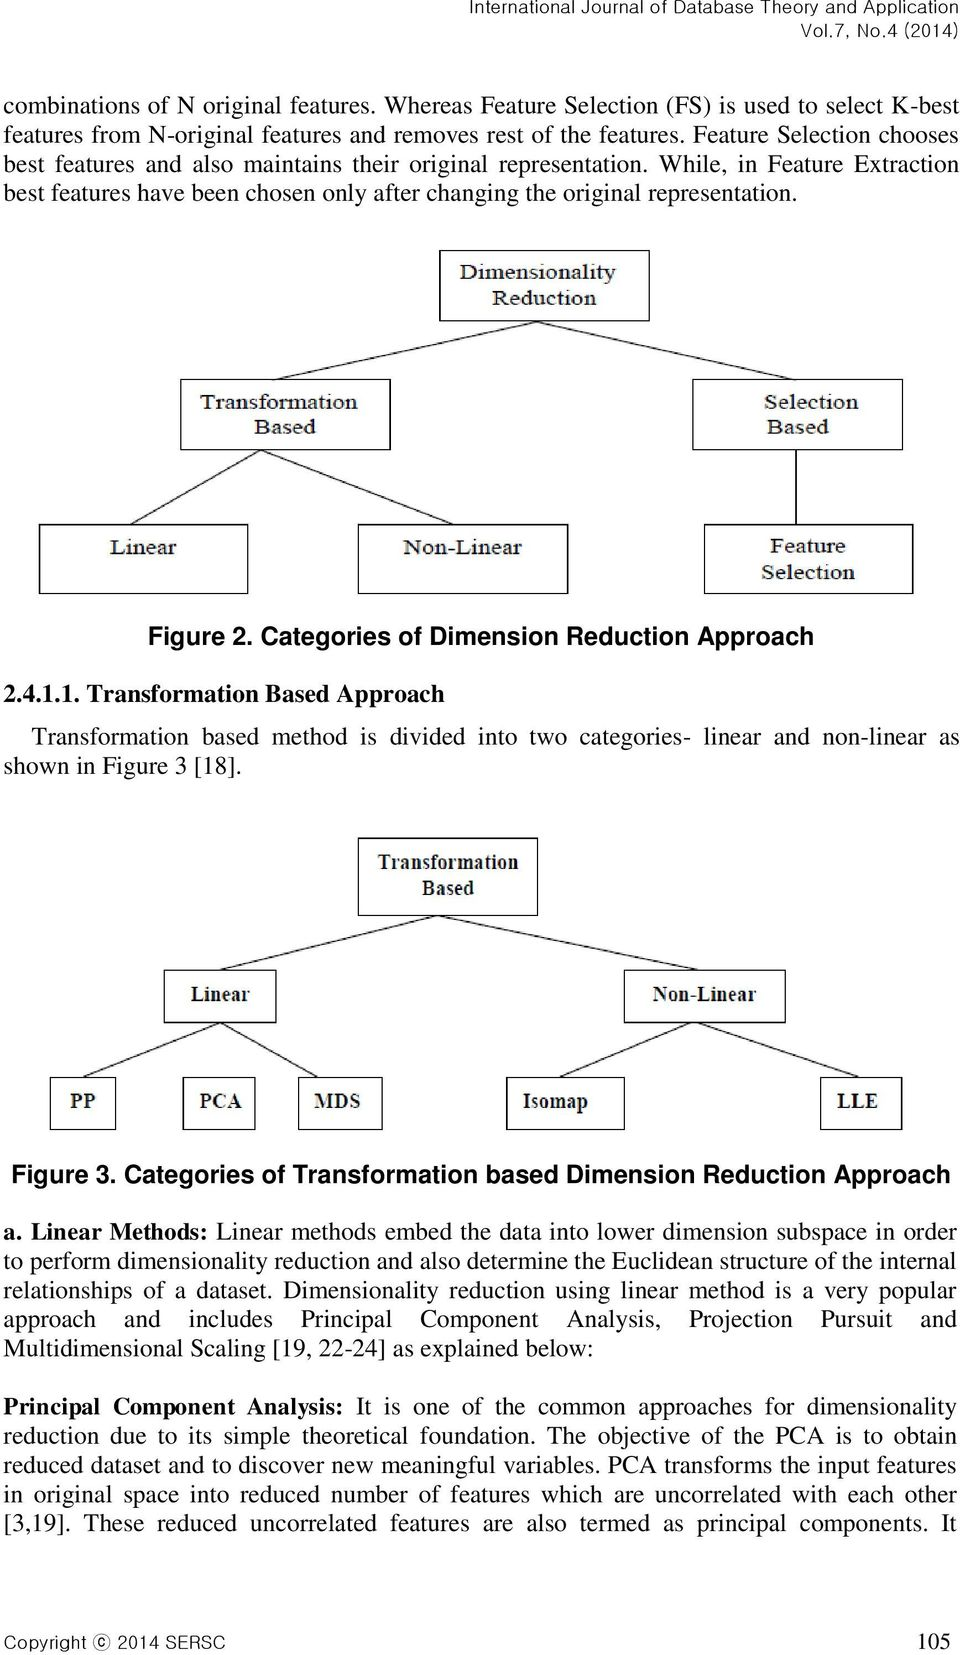 Figure 2. Categories of Dimension Reduction Approach 2.4.1.1. Transformation Based Approach Transformation based method is divided into two categories- linear and non-linear as shown in Figure 3 [18].